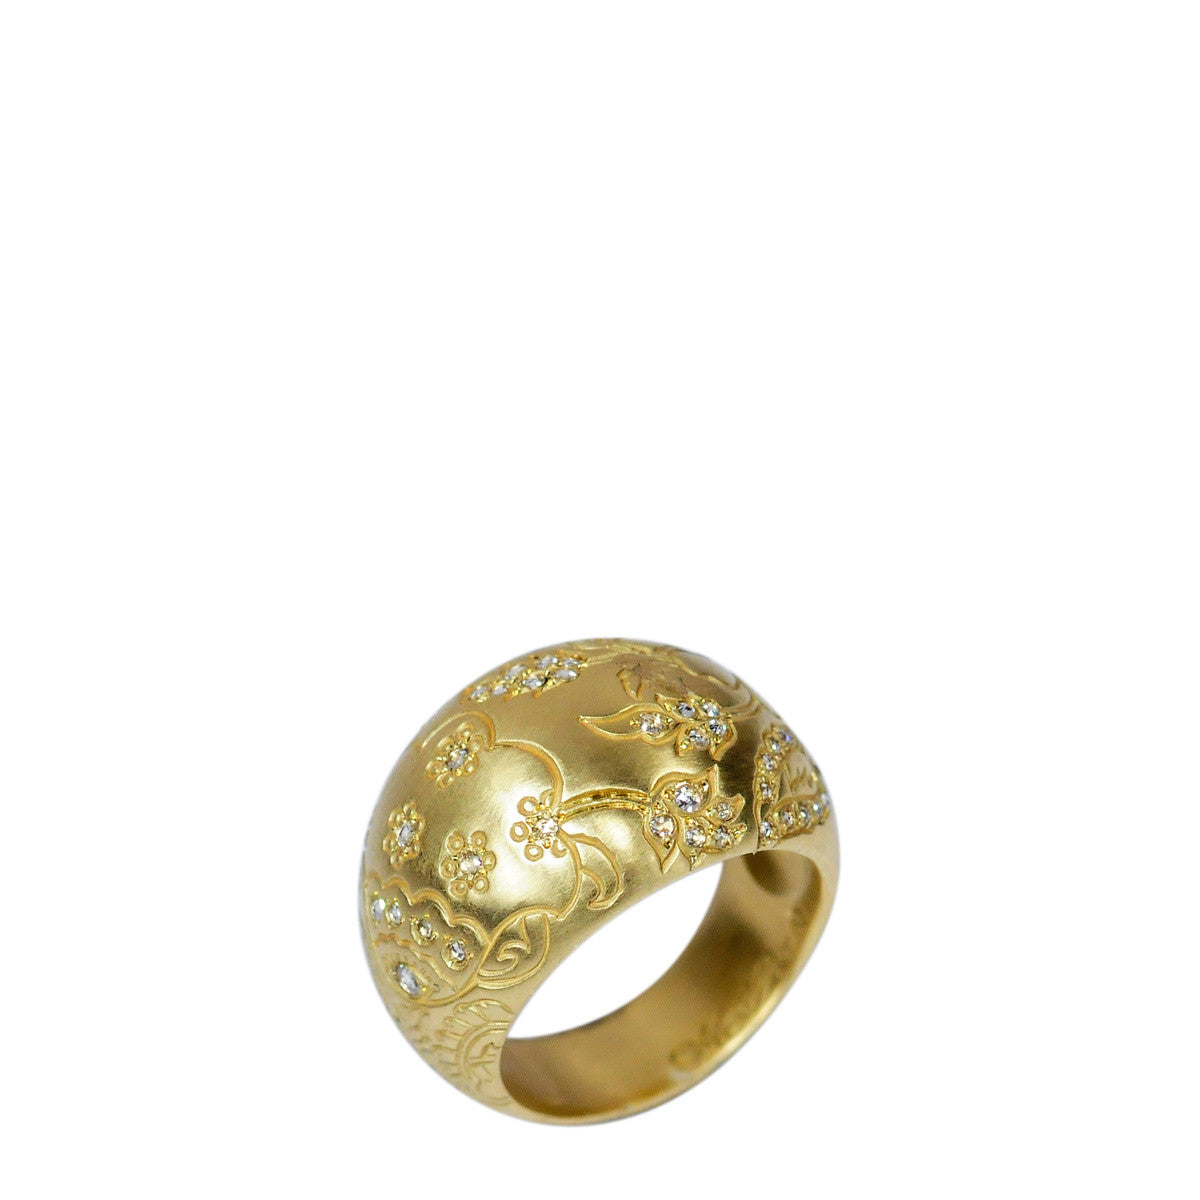 18K Gold Engraved Paisley Dome Ring with Diamonds